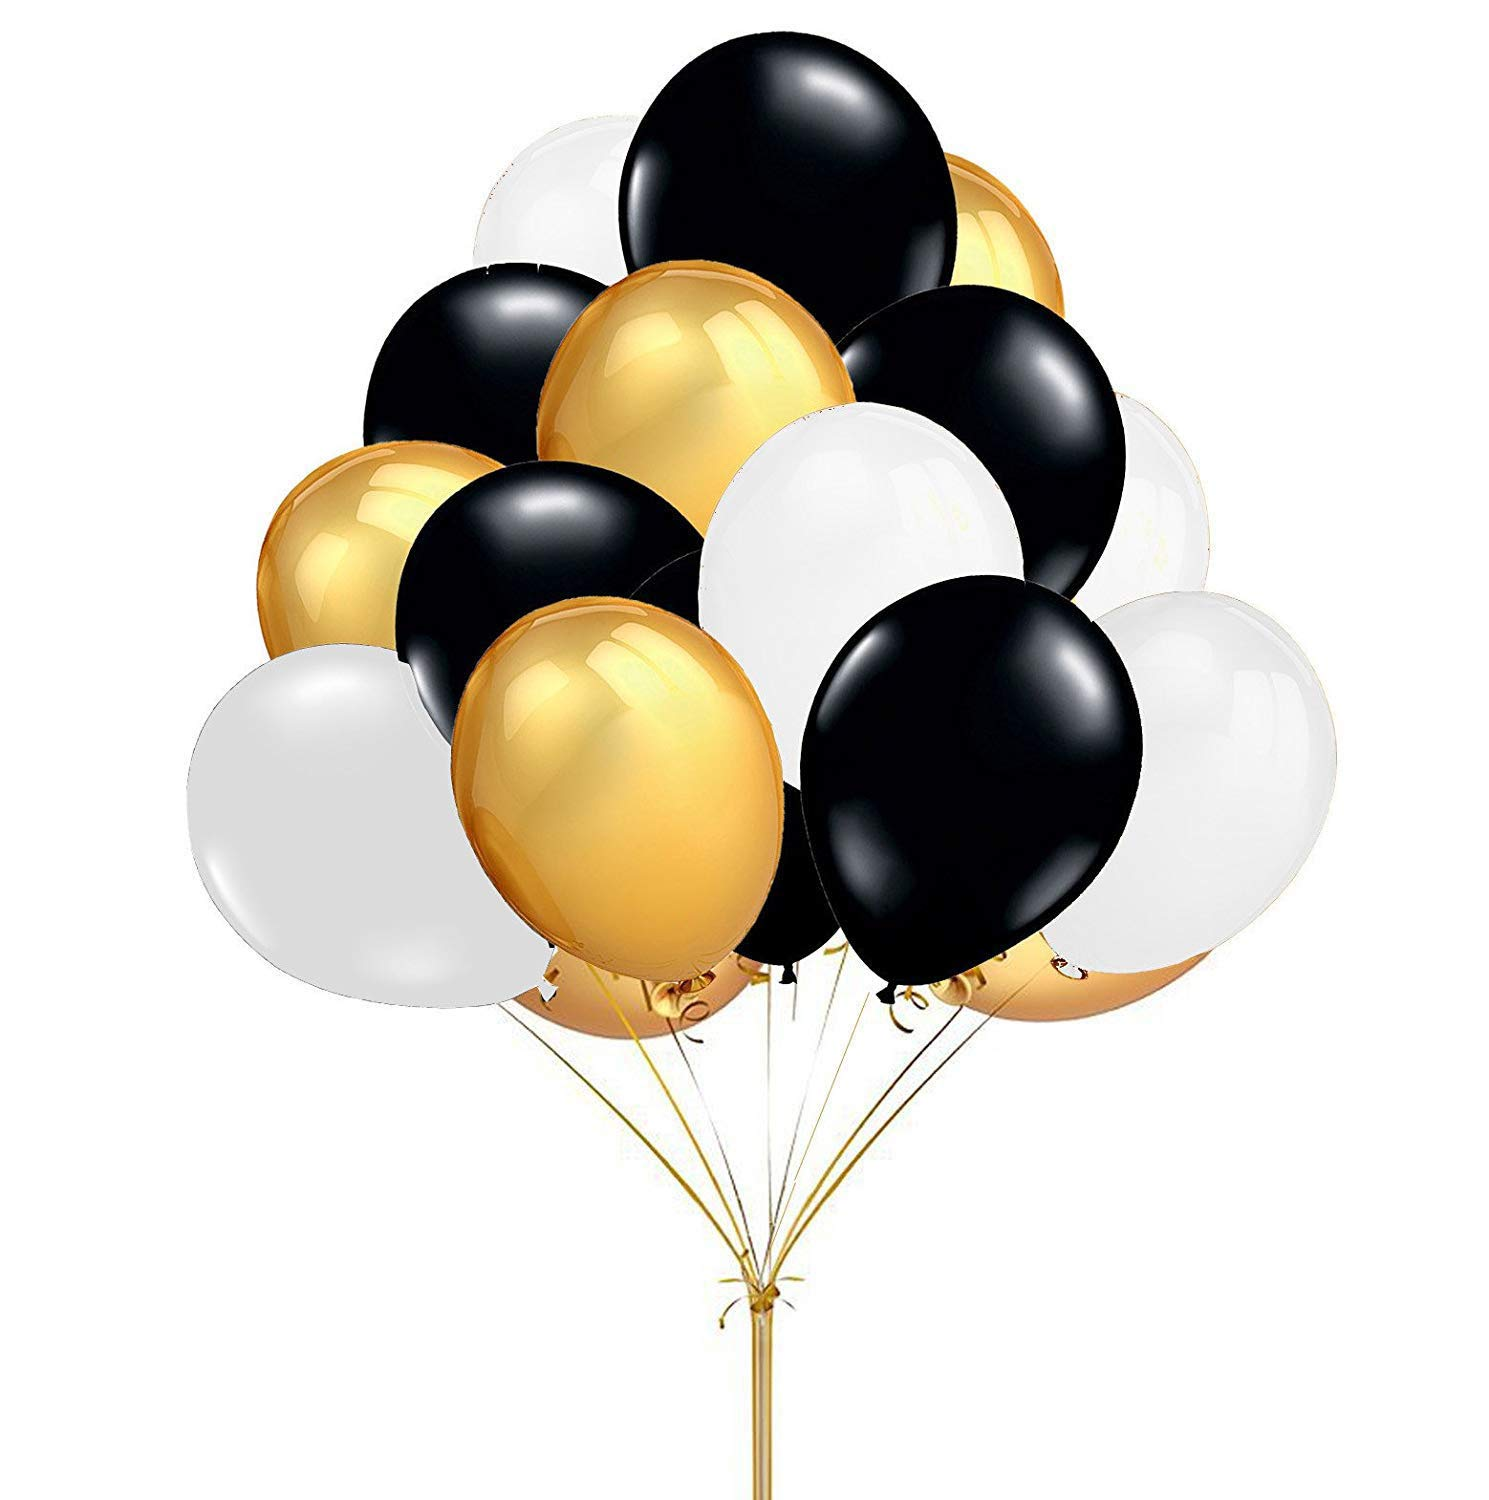 Fecedy 12 Gold Black White Round Latex Balloons for Decoration 100pcs/pack B06VWT7333